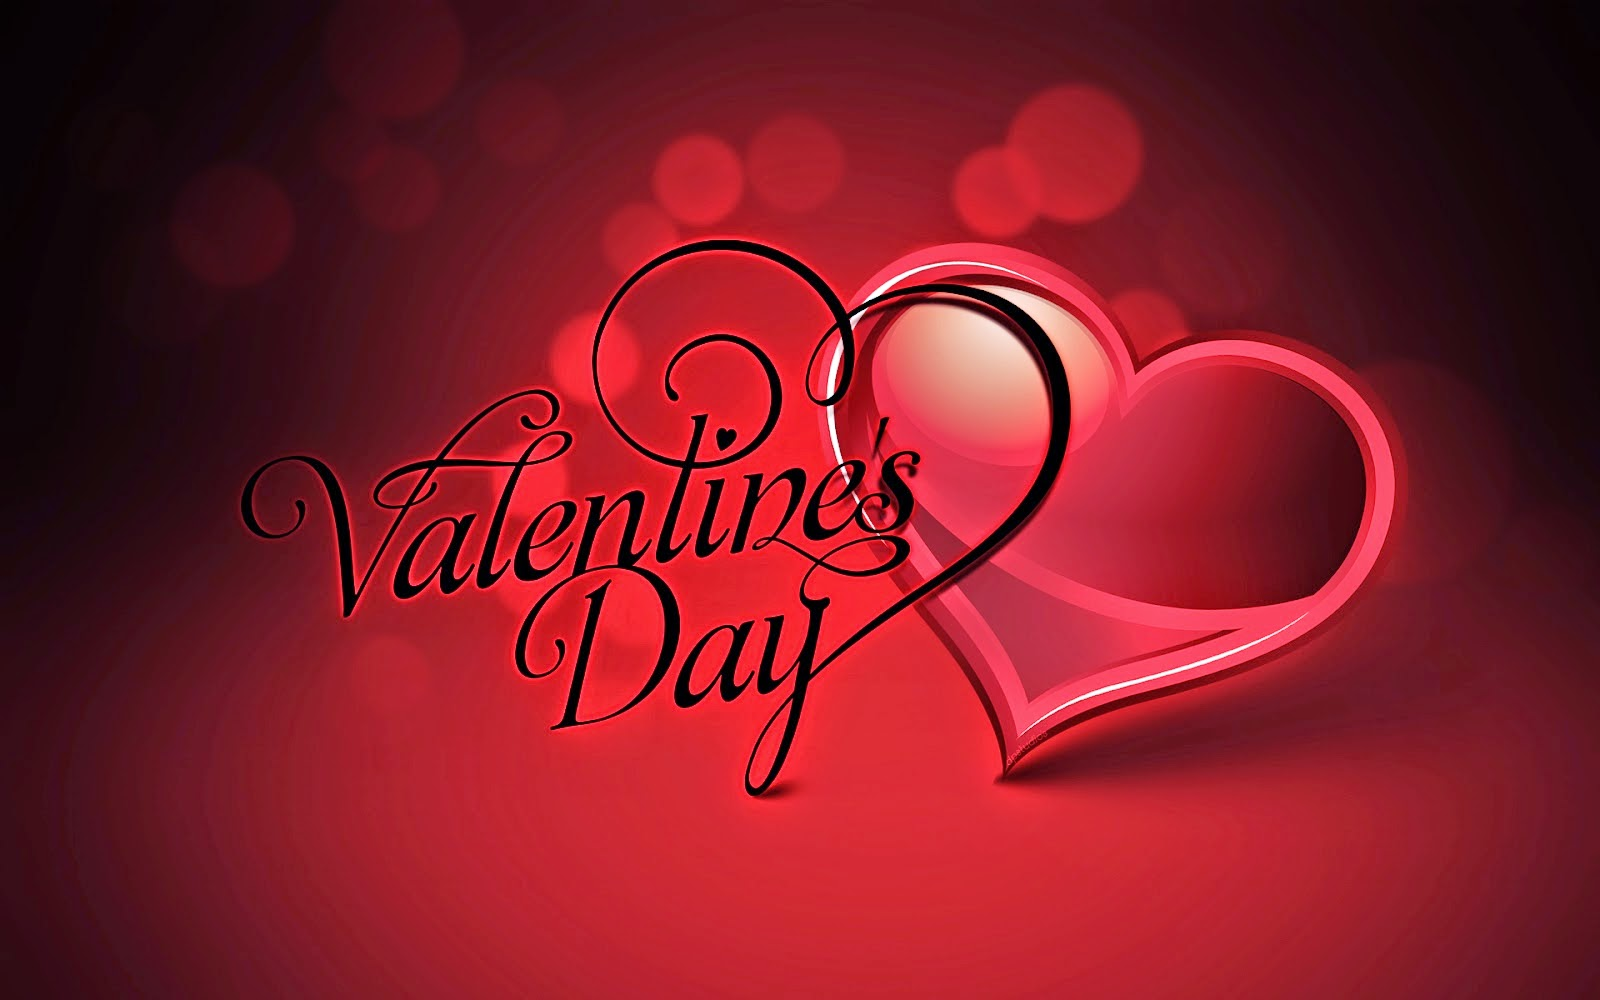 Valentines Day Most Romantic HD Wallpaper Free Download – Most Beautiful Valentine Cards